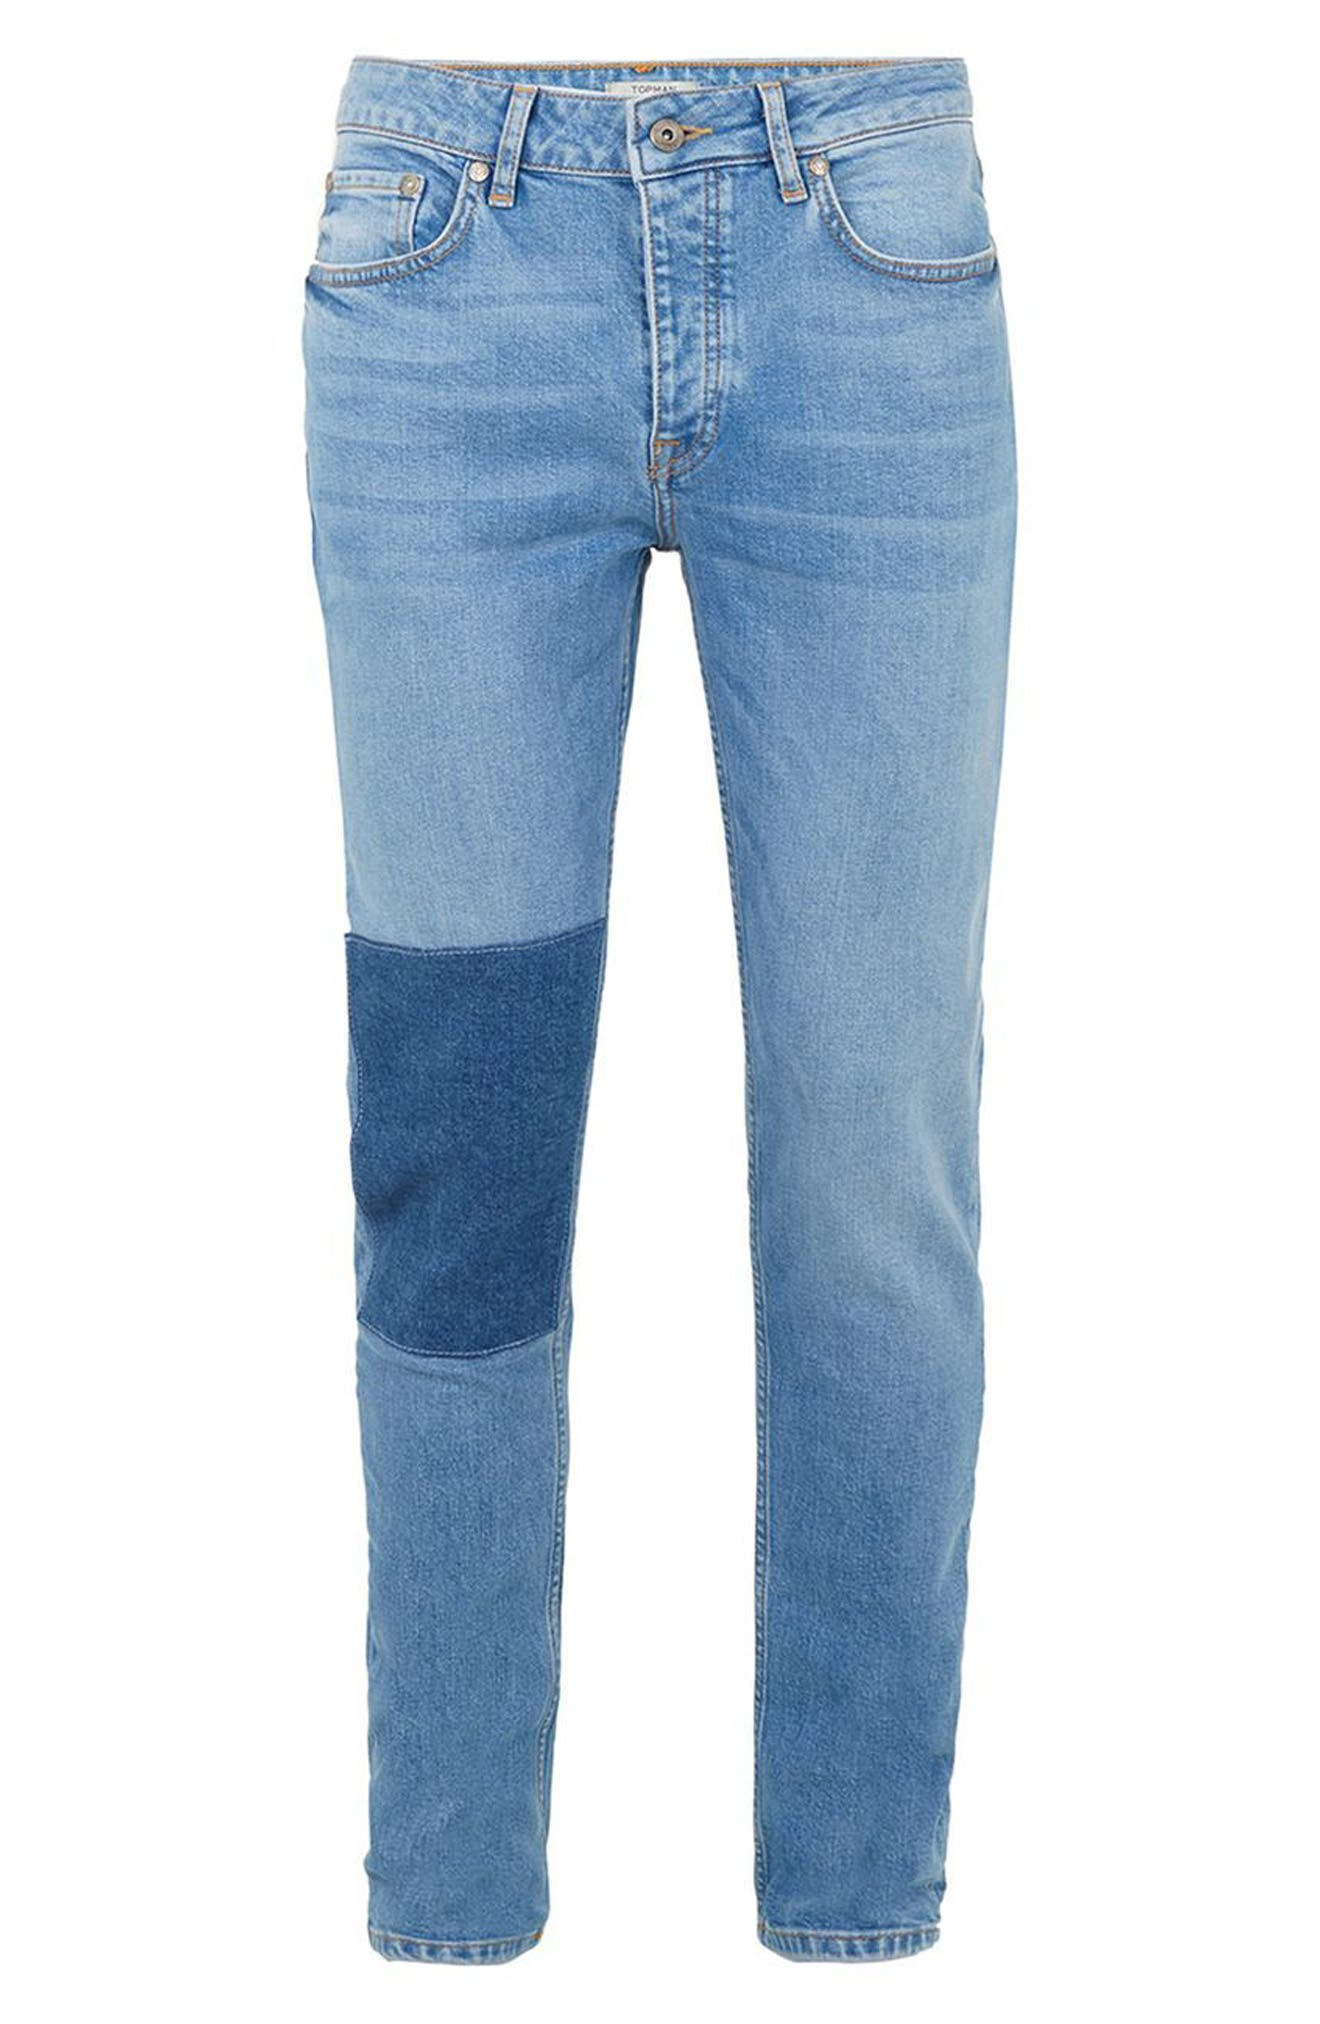 Patch Stretch Skinny Jeans,                             Alternate thumbnail 4, color,